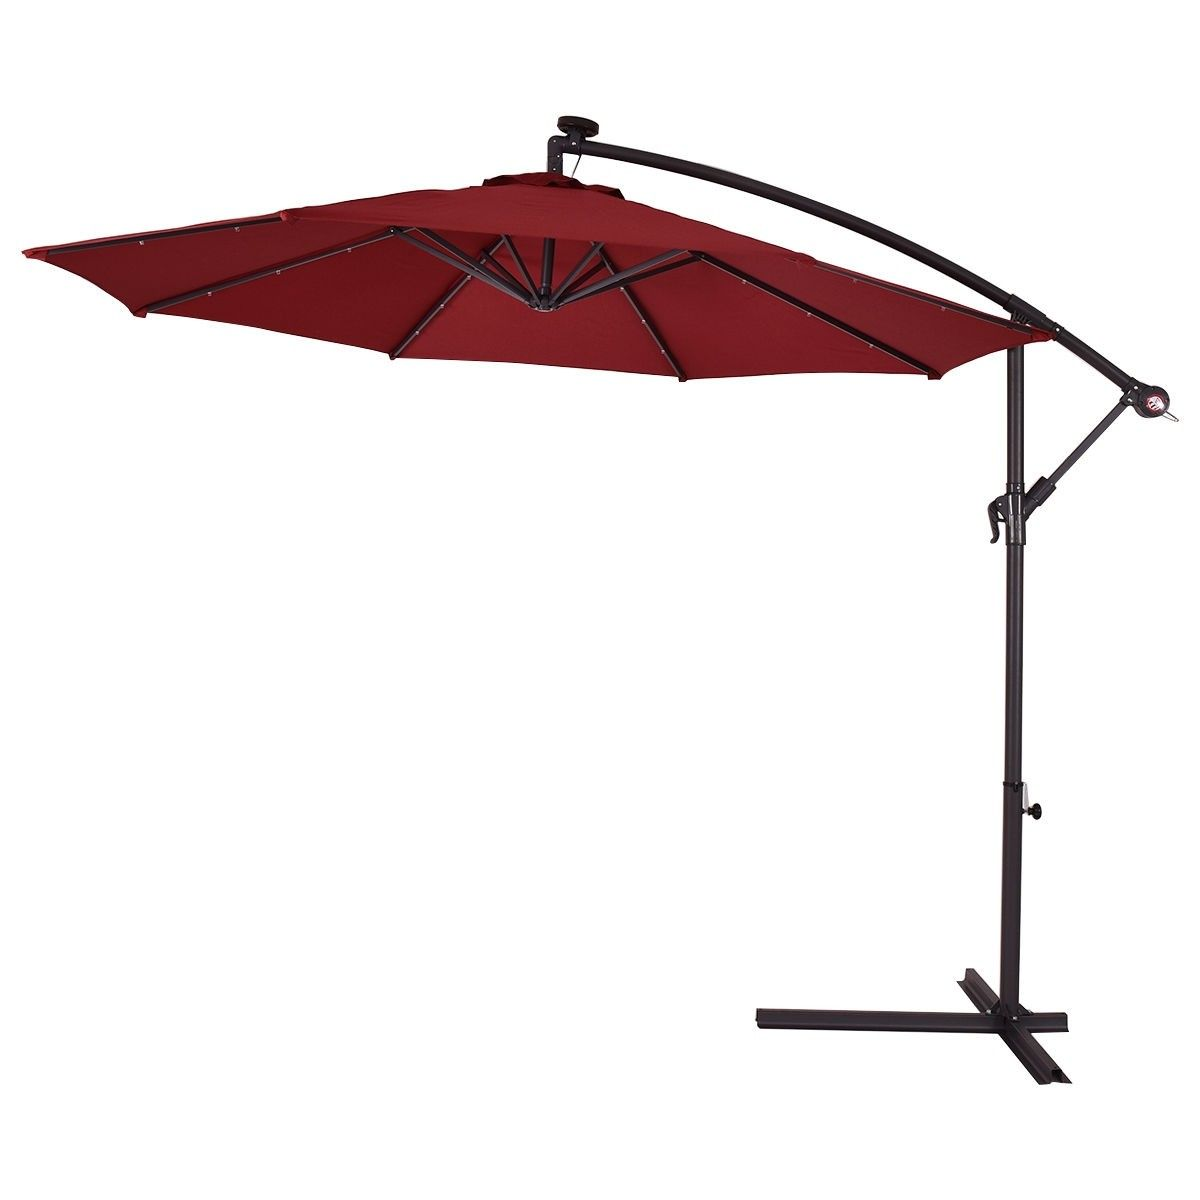 10 Patio Hanging Umbrella Sun Shade With Solar Led Lights Patio Umbrella Cantilever Umbrella Canopy Outdoor